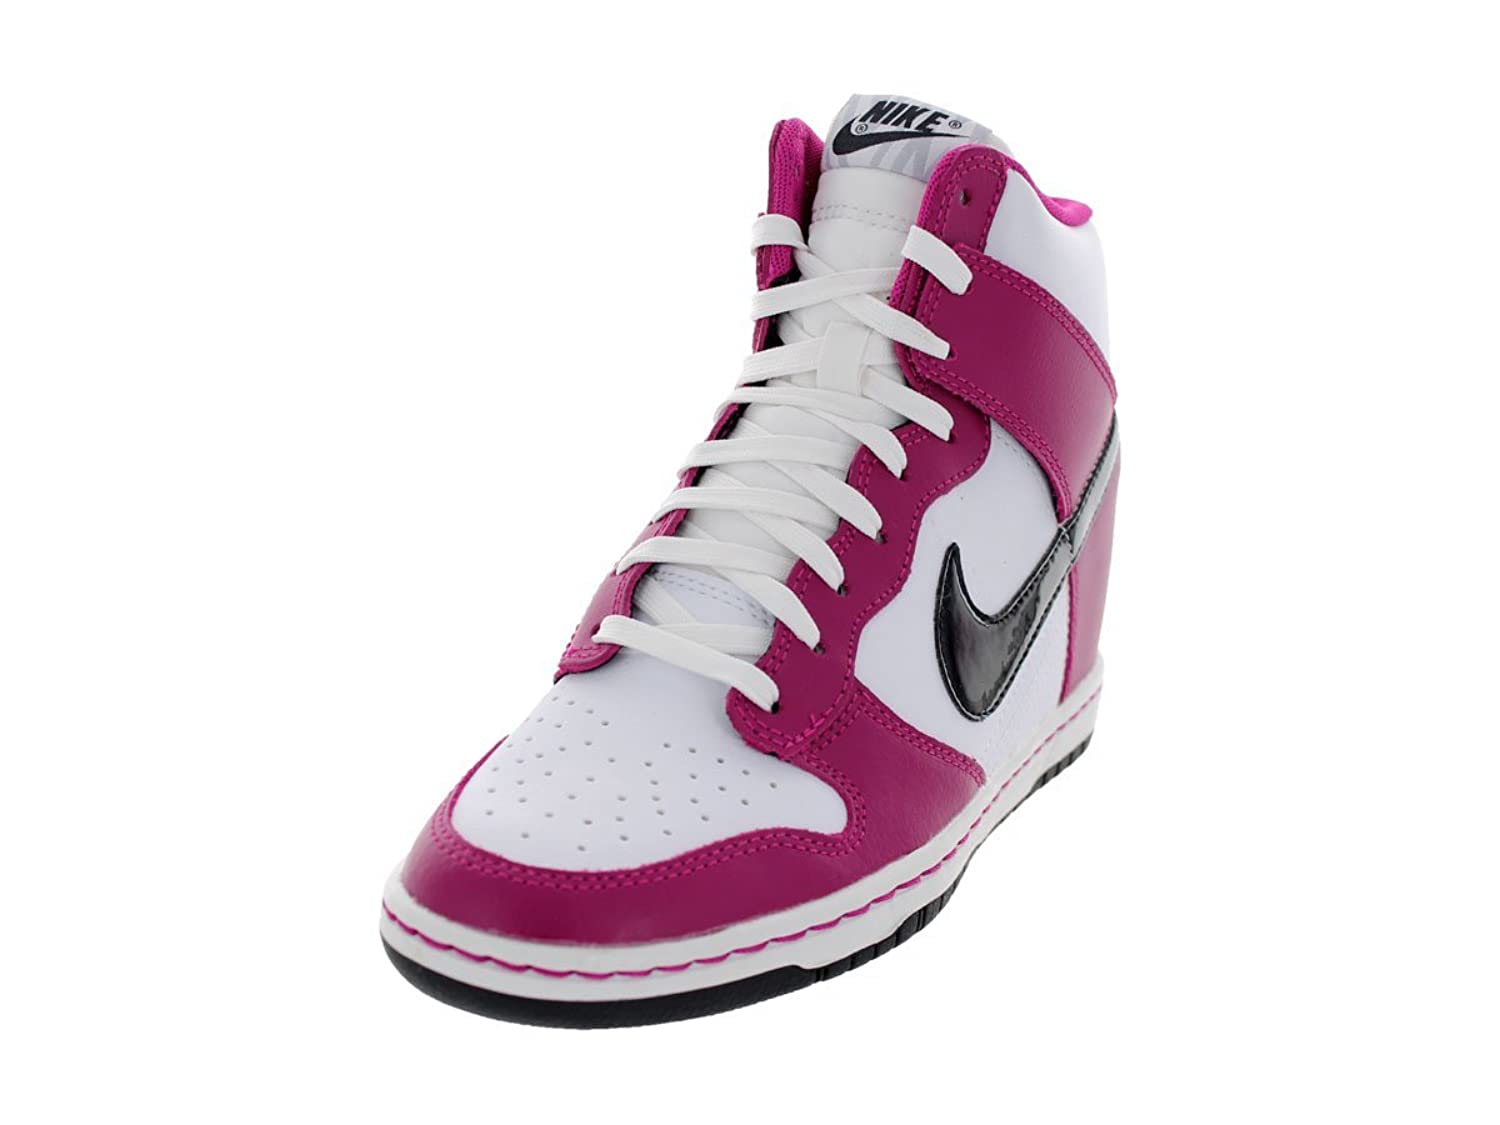 Women's Nike Dunk Sky High Bright Magenta / Black White Shoes